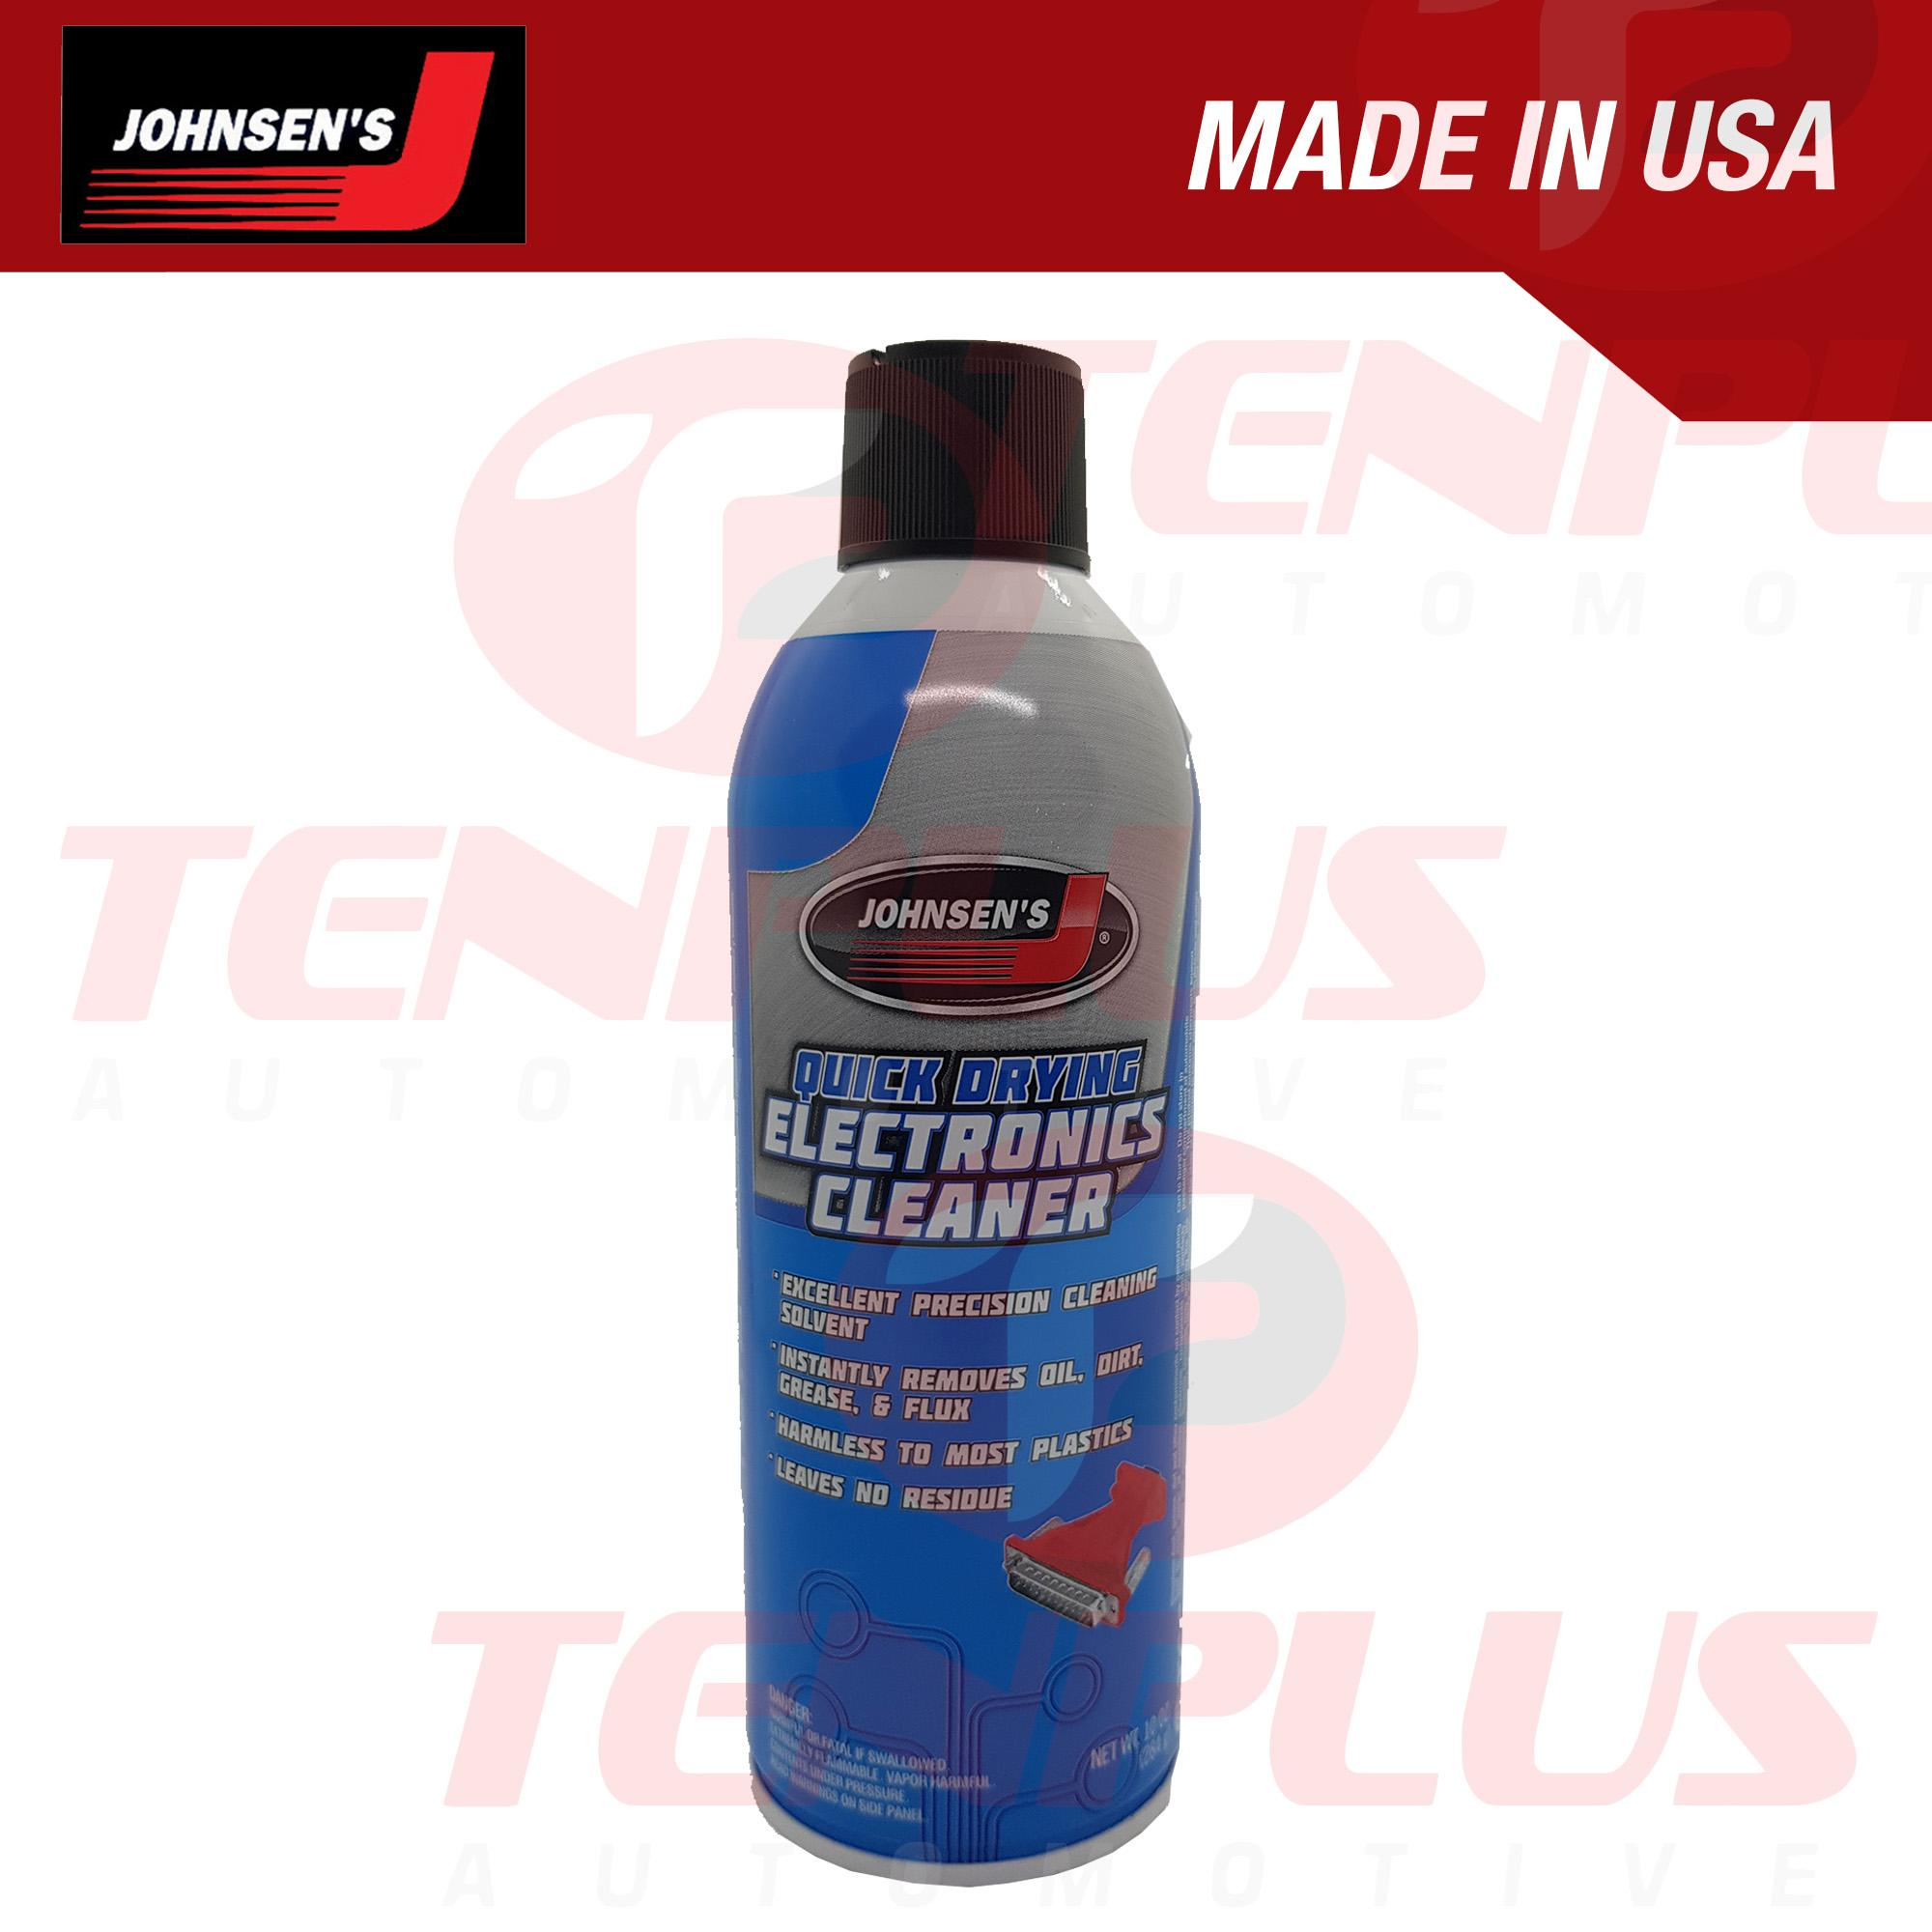 Johnsens Quick Dry Electronics Cleaner 10oz. By Tenplus Auto Supply.